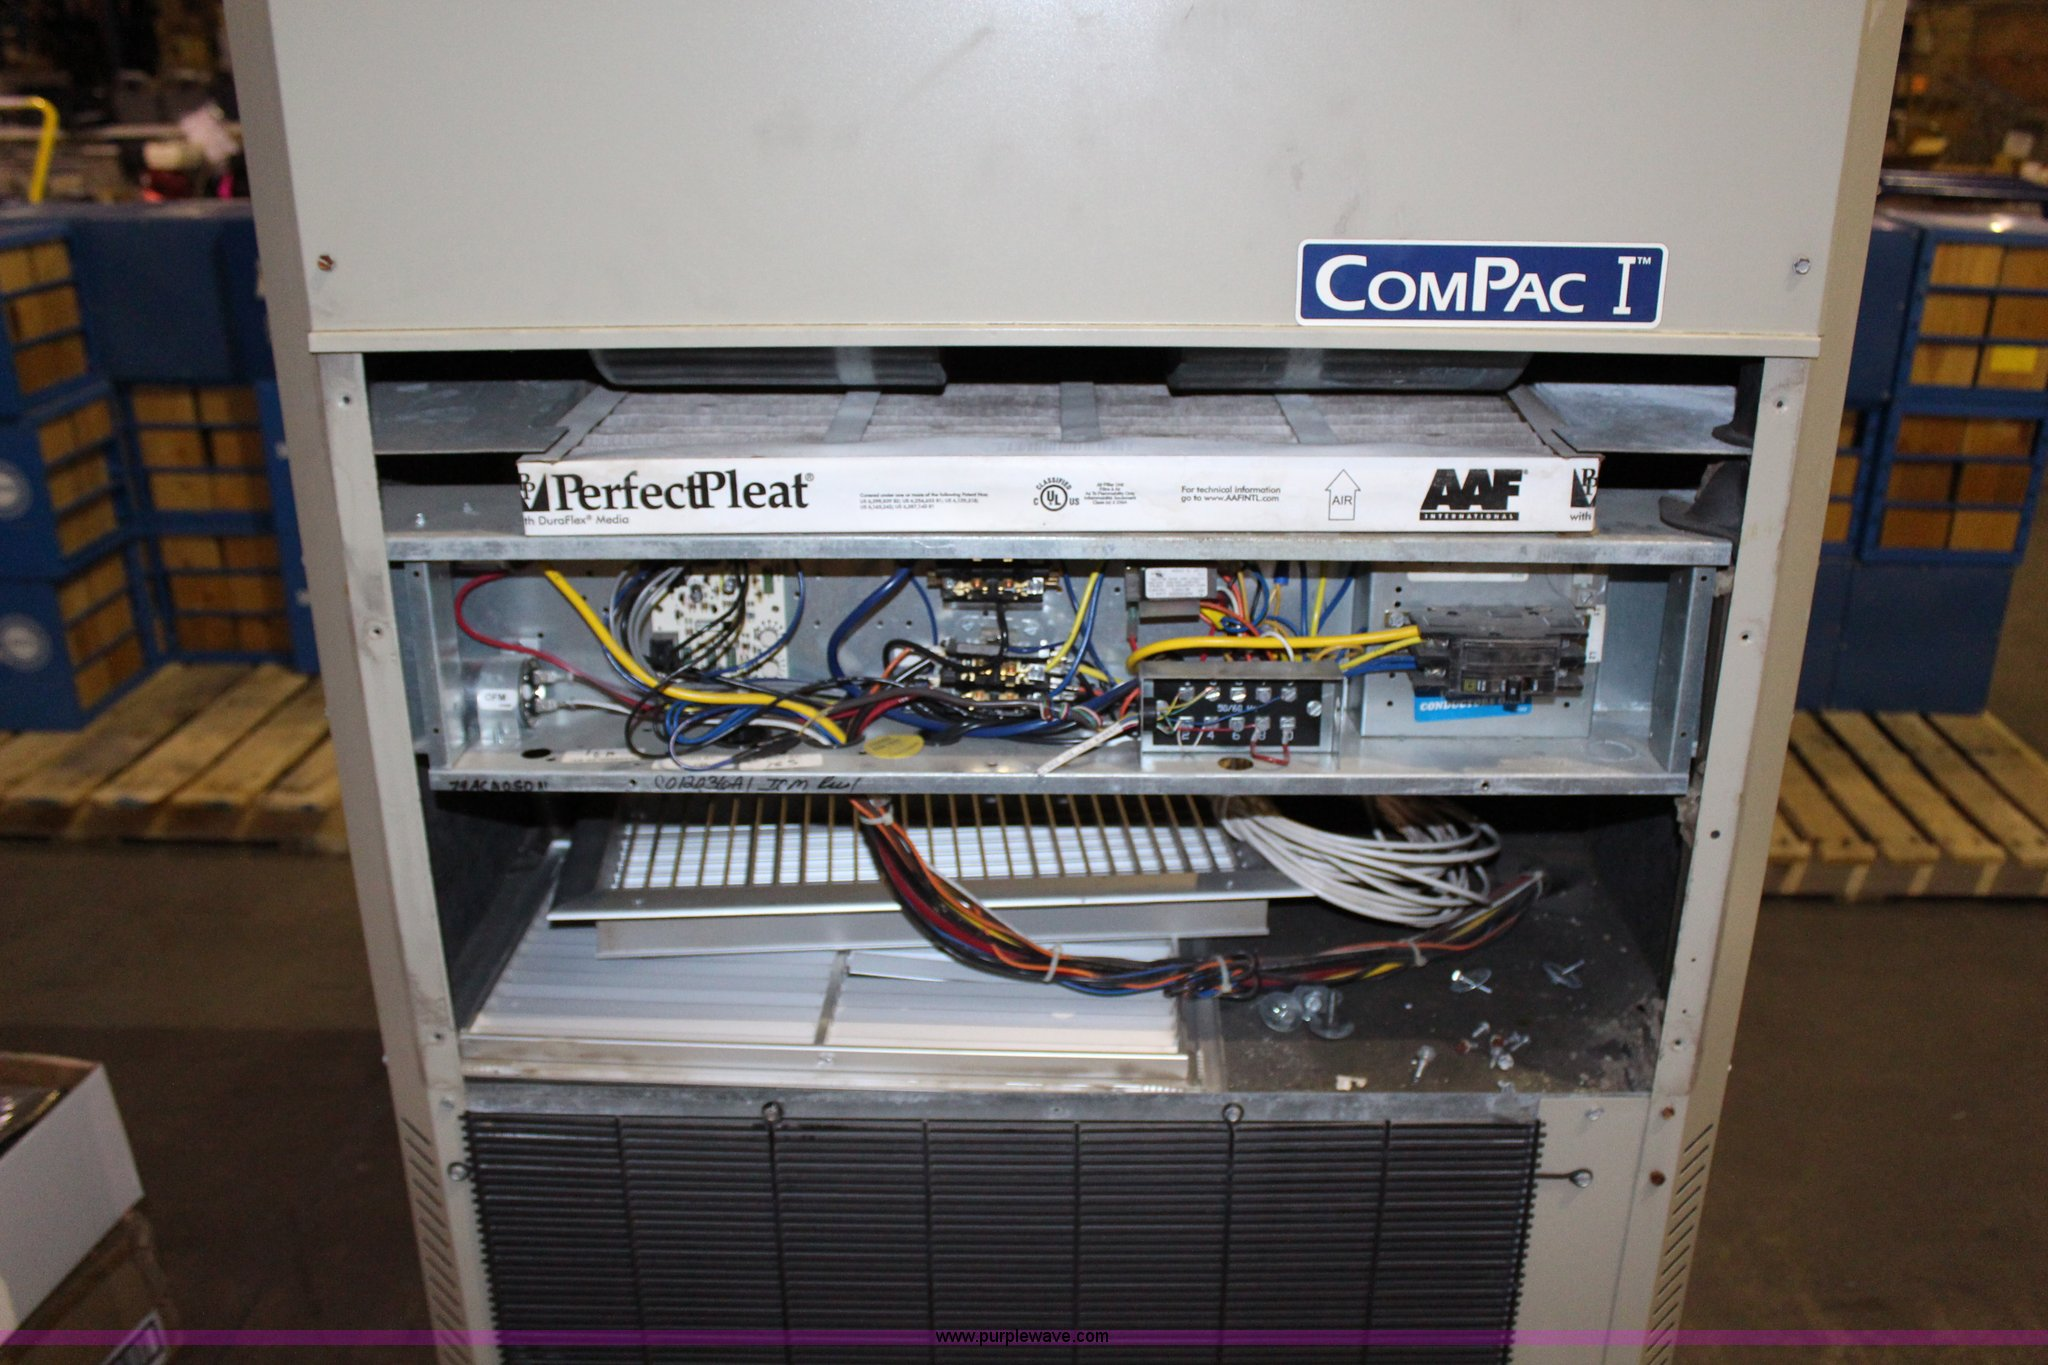 Marvair Compac I Air Conditioner And Heater Item Ak9403 Conditioners Wiring Diagrams Full Size In New Window